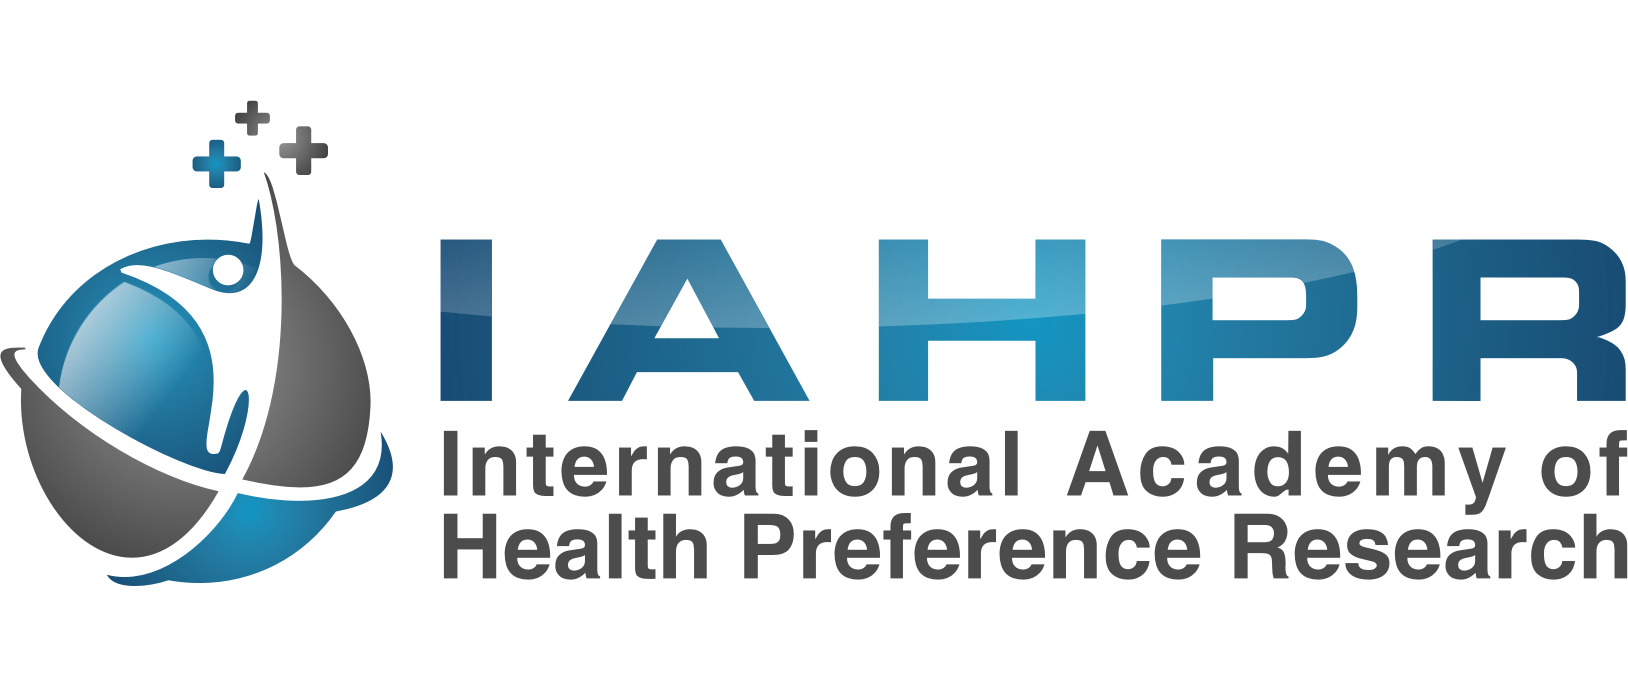 International Academy of Health Preference Research